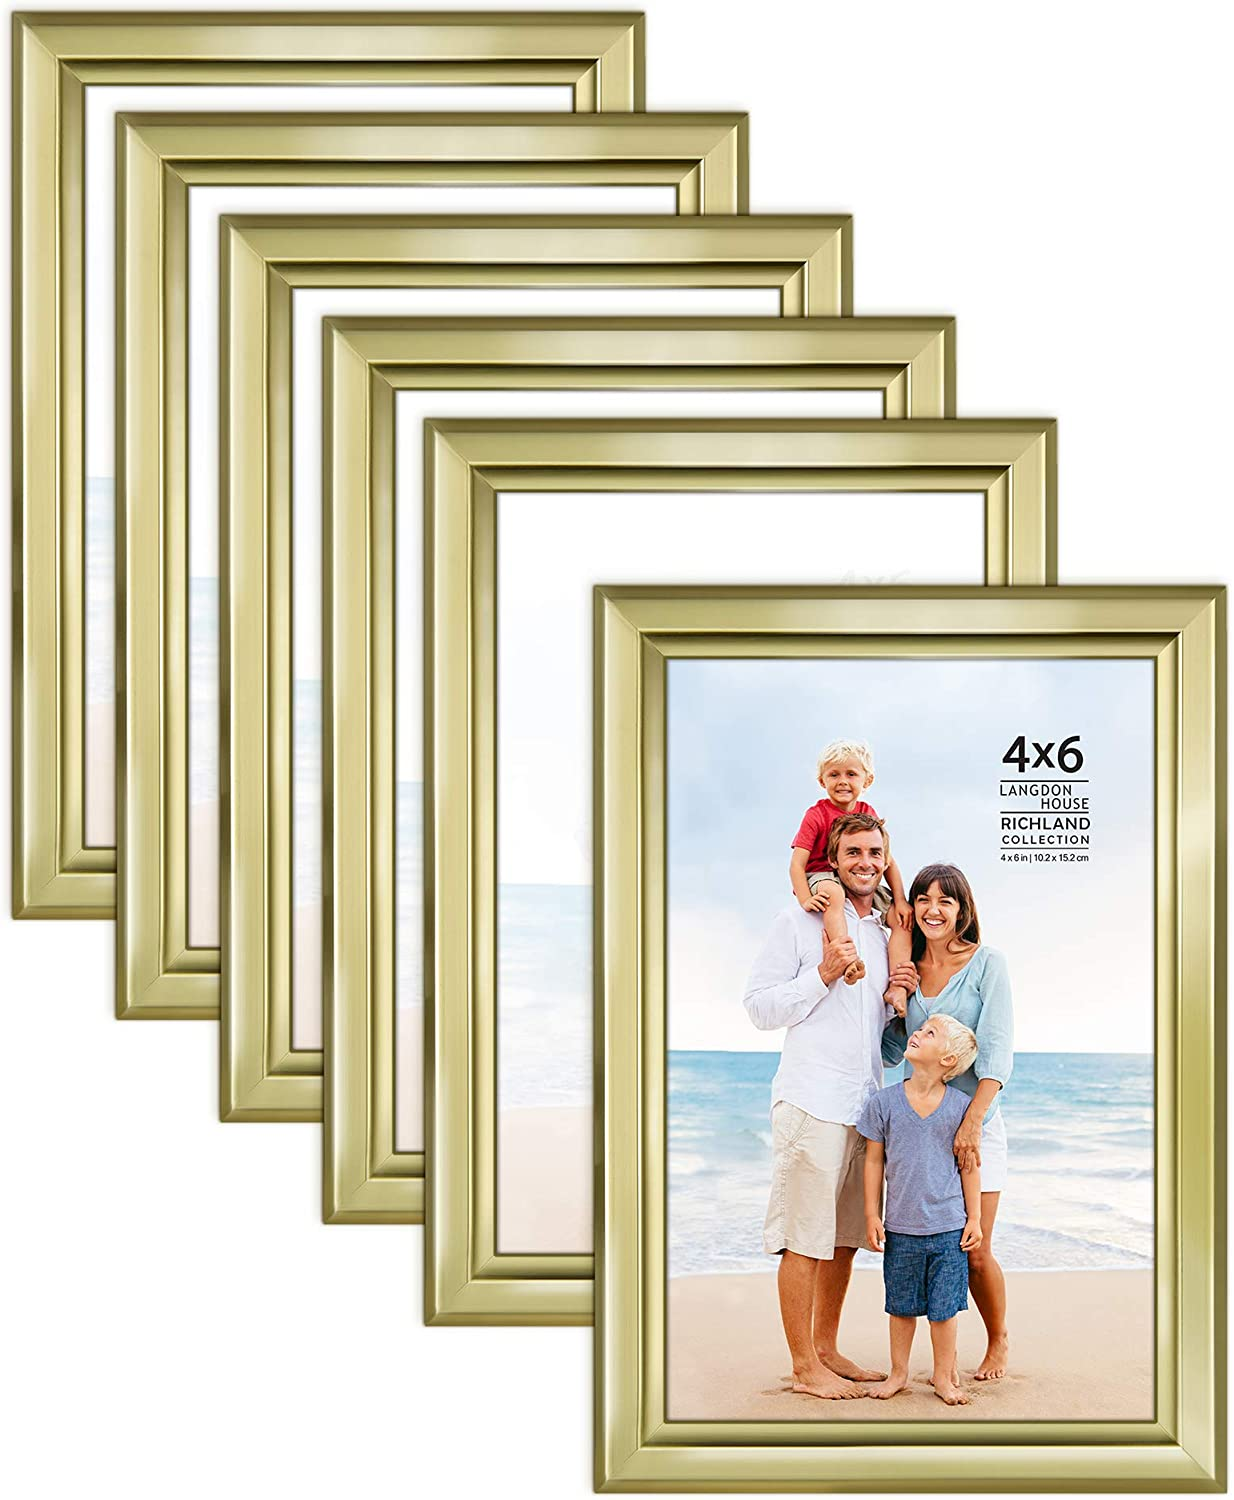 Picture Frames Contemporary Style Wood-Like Photo Frames Langdon House 4x6 Fawn Brown, 6 Pack 10x15 cm Richland Collection